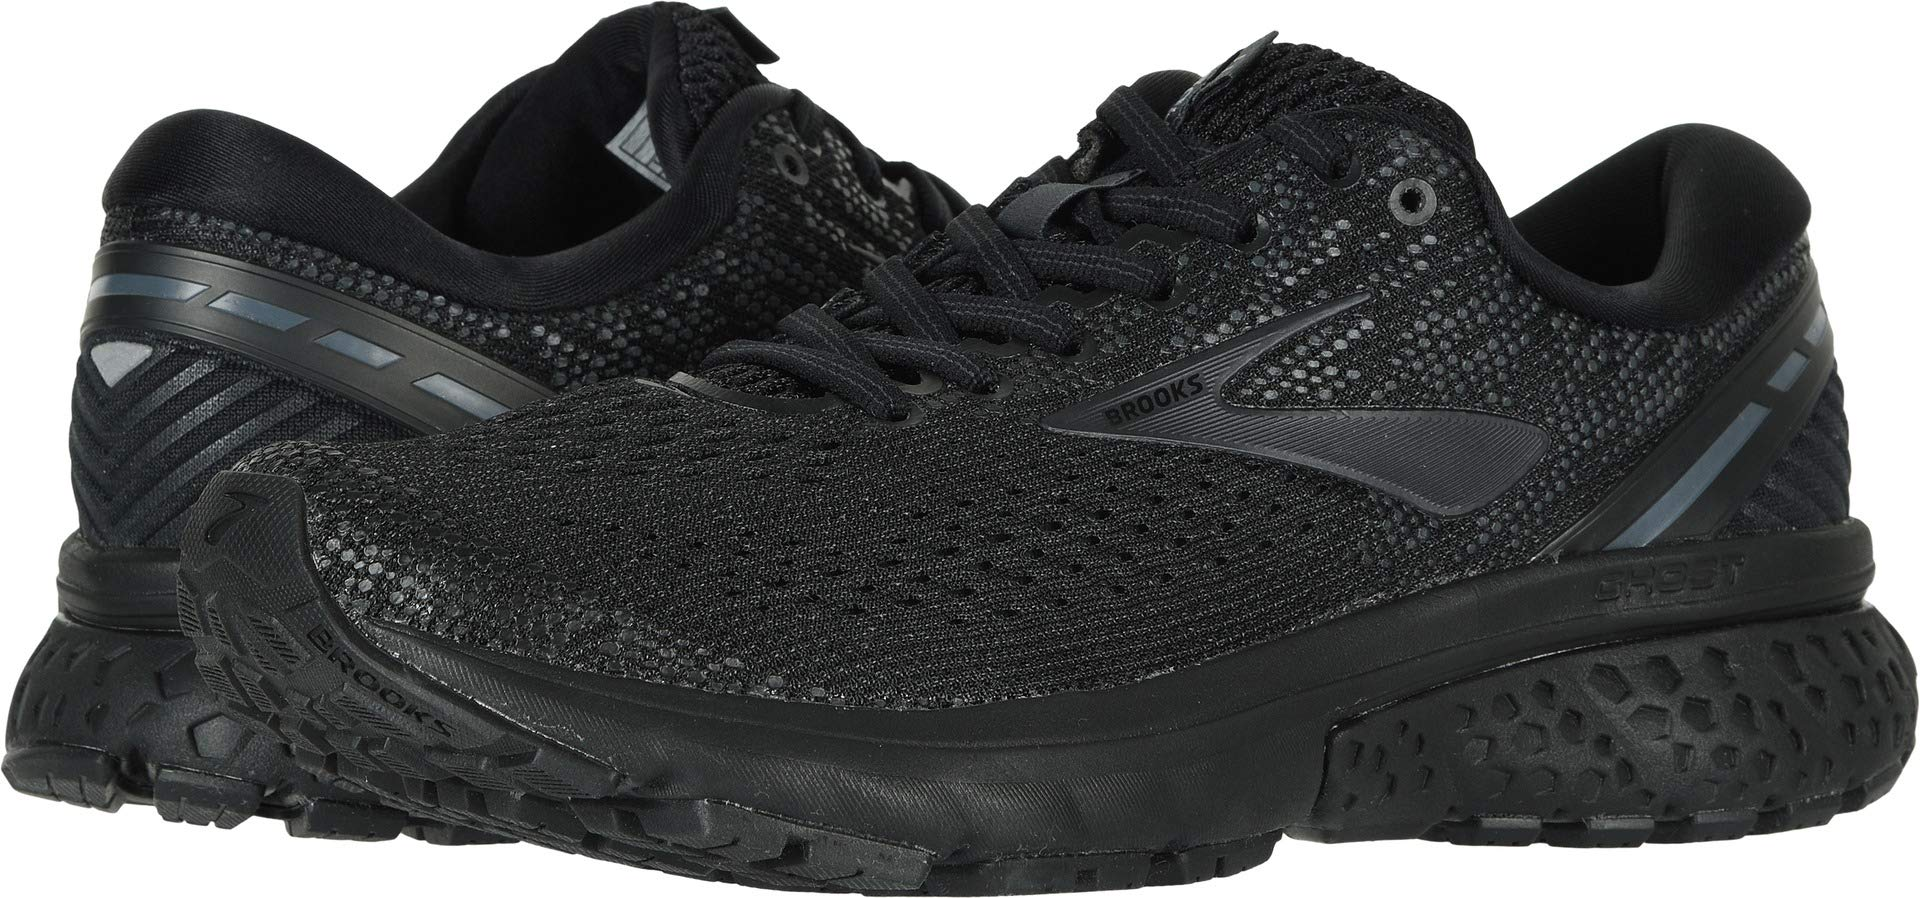 Brooks Women's Ghost 11 Black/Ebony 10 Wide US by Brooks